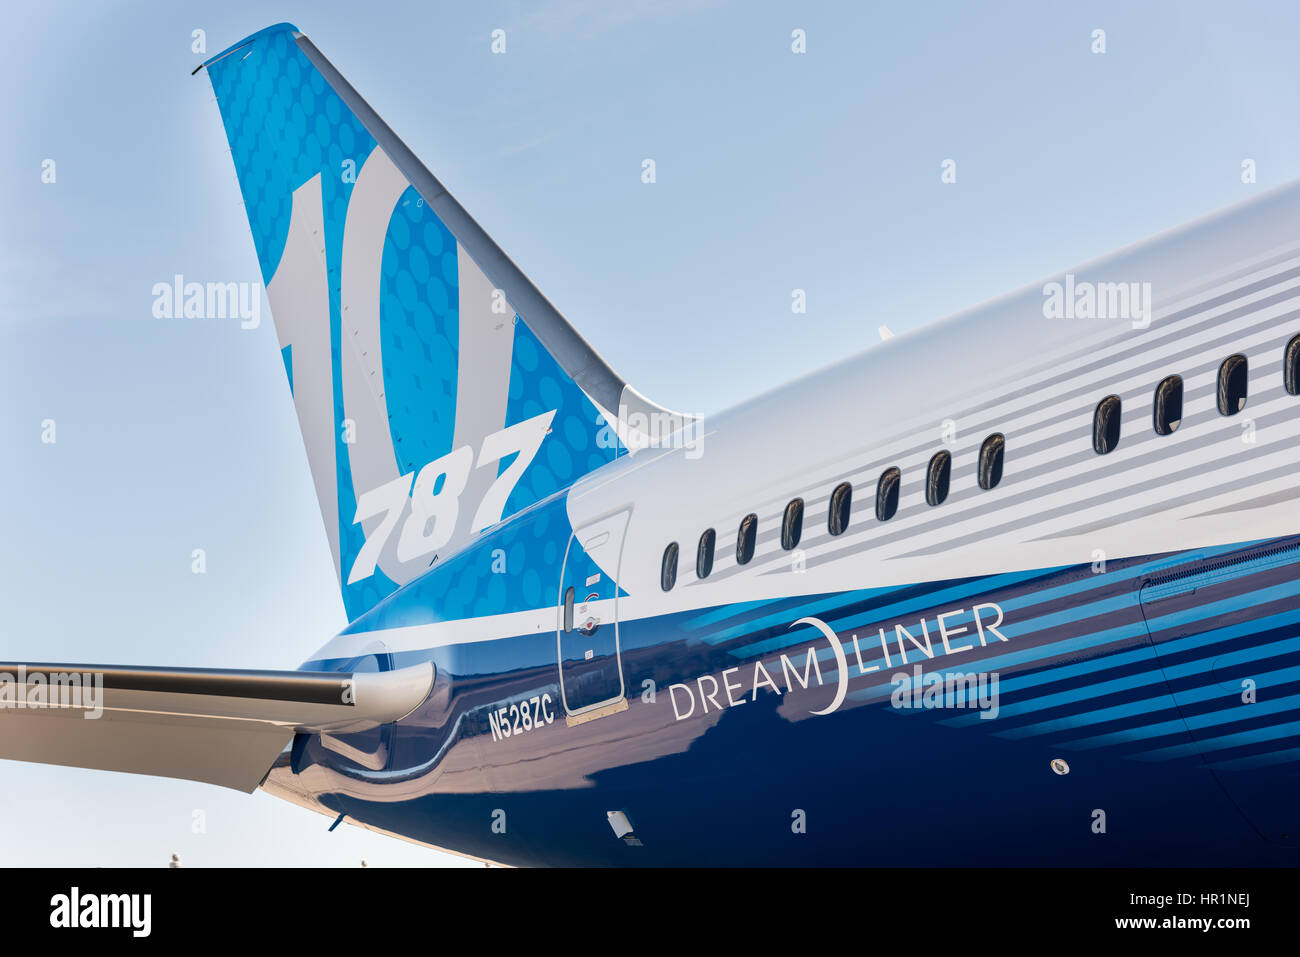 Wide Body Aircraft Stock Photos & Wide Body Aircraft Stock Images